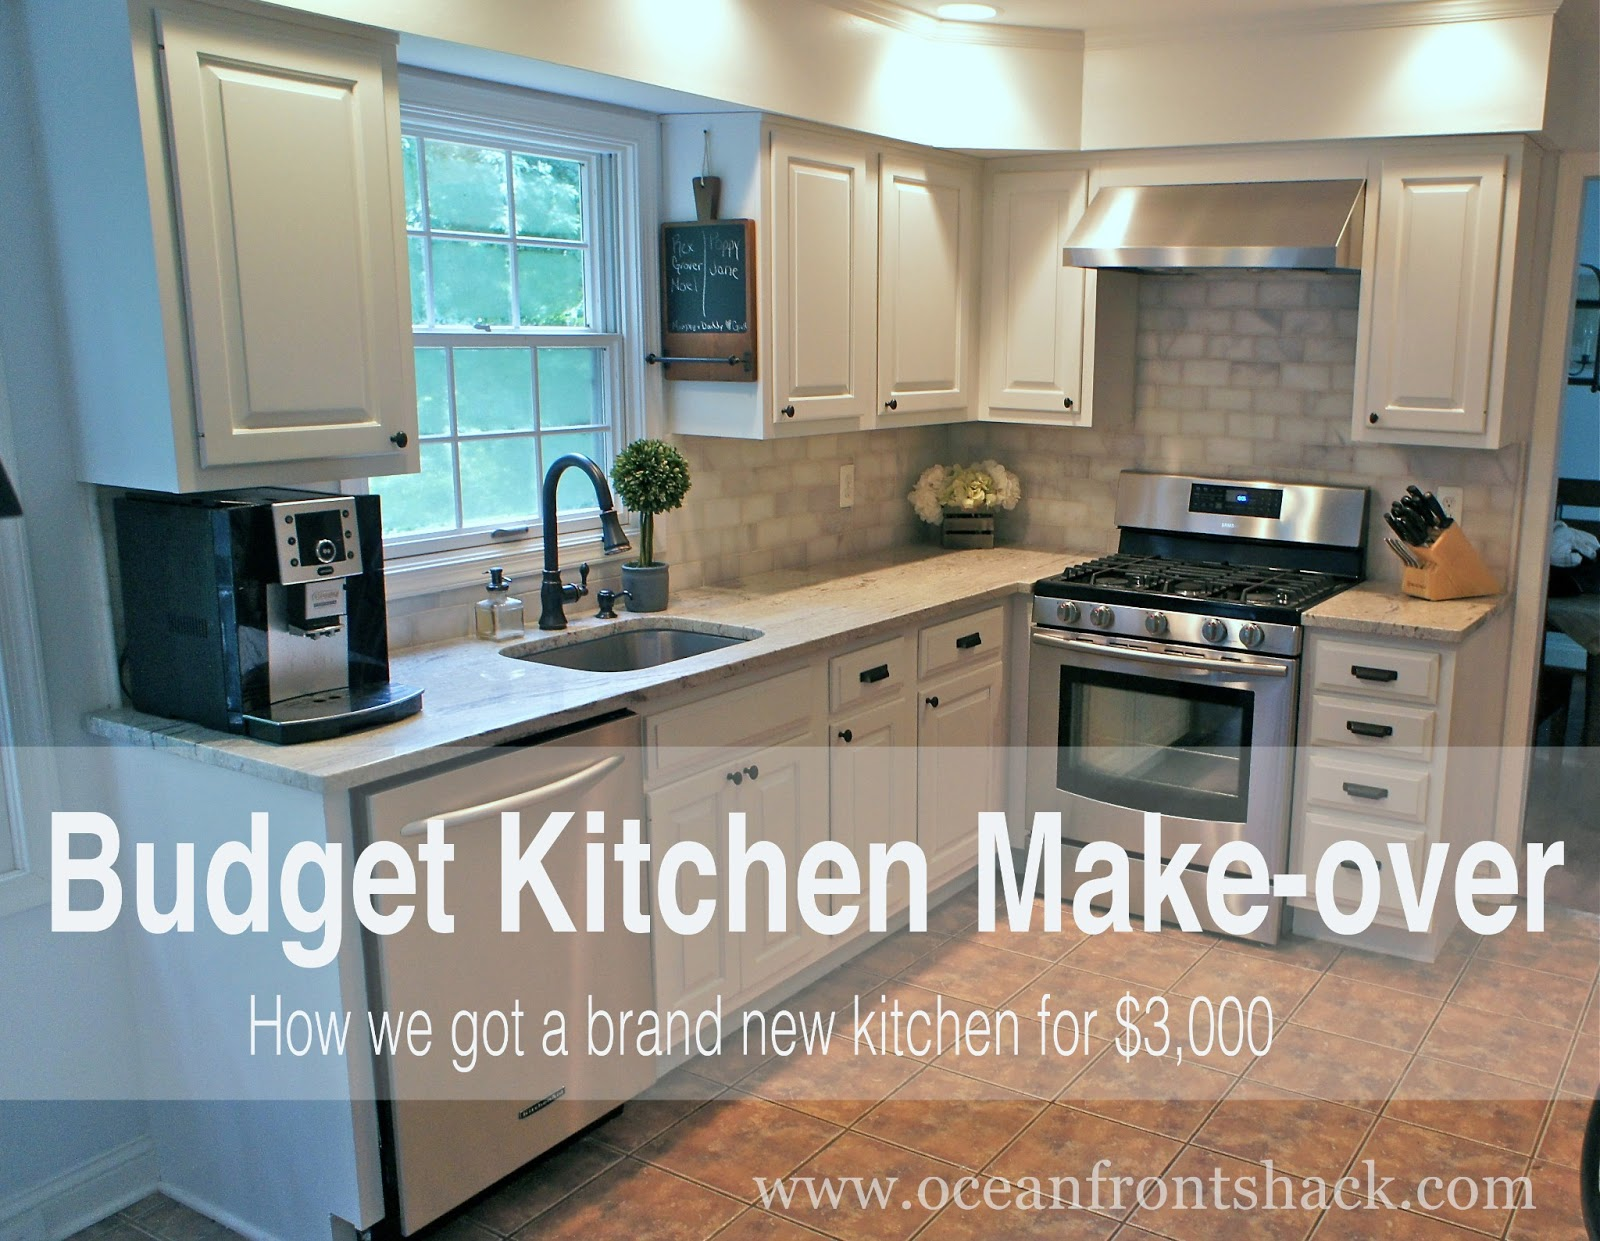 Inexpensive Kitchen Makeovers Cabinets Denver Budget Makeover Ocean Front Shack